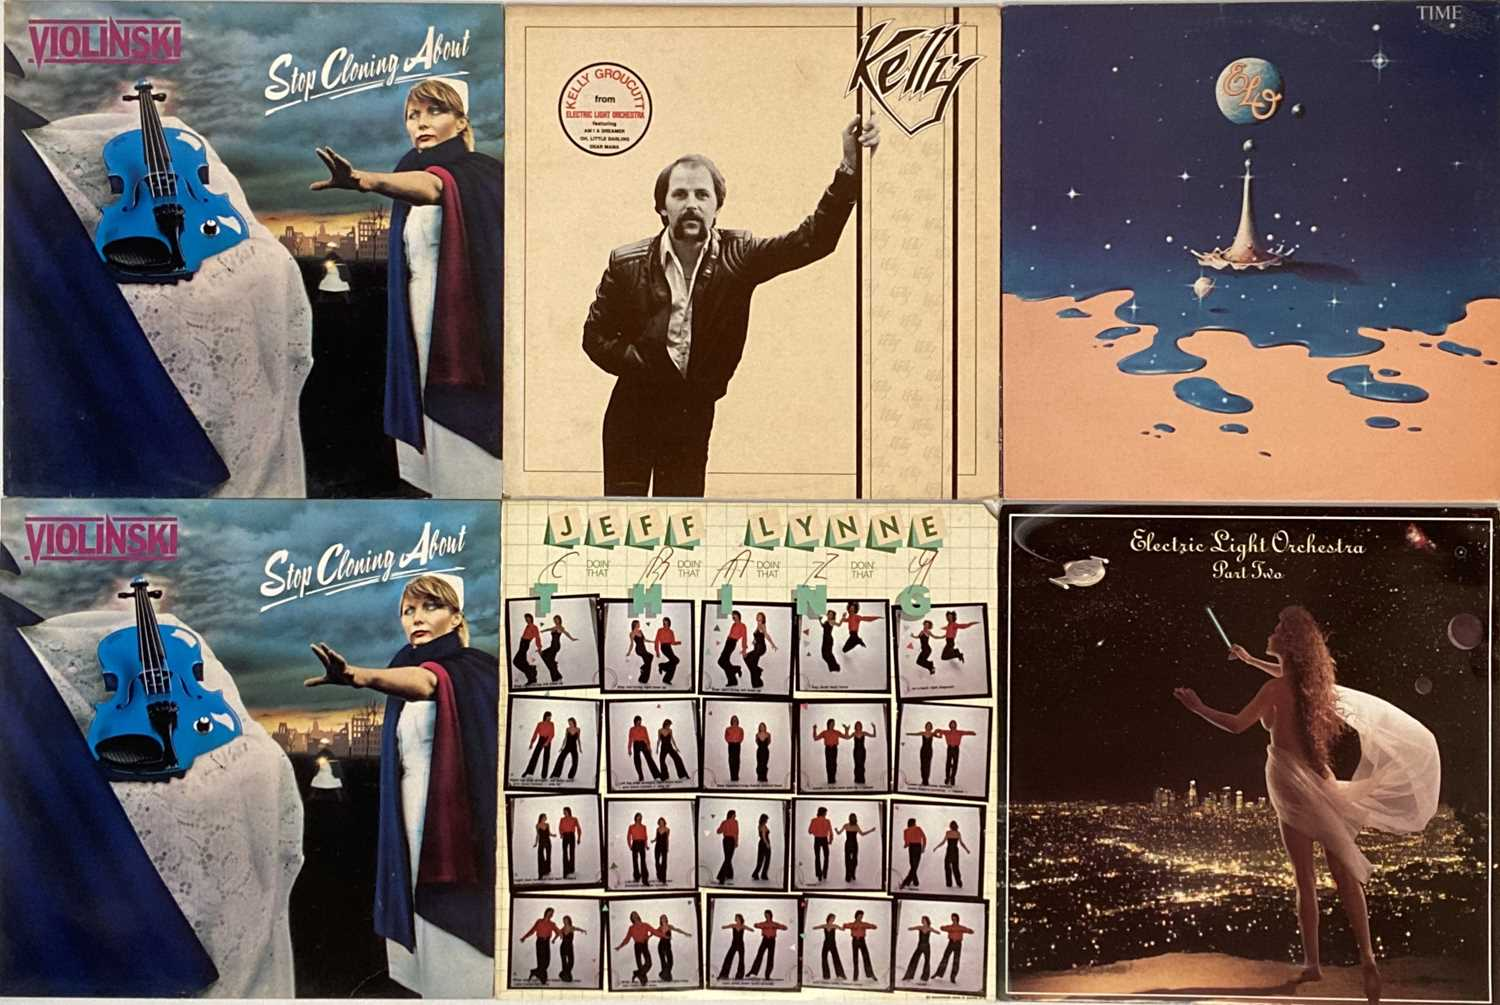 ELO AND RELATED - LPs - Image 3 of 5